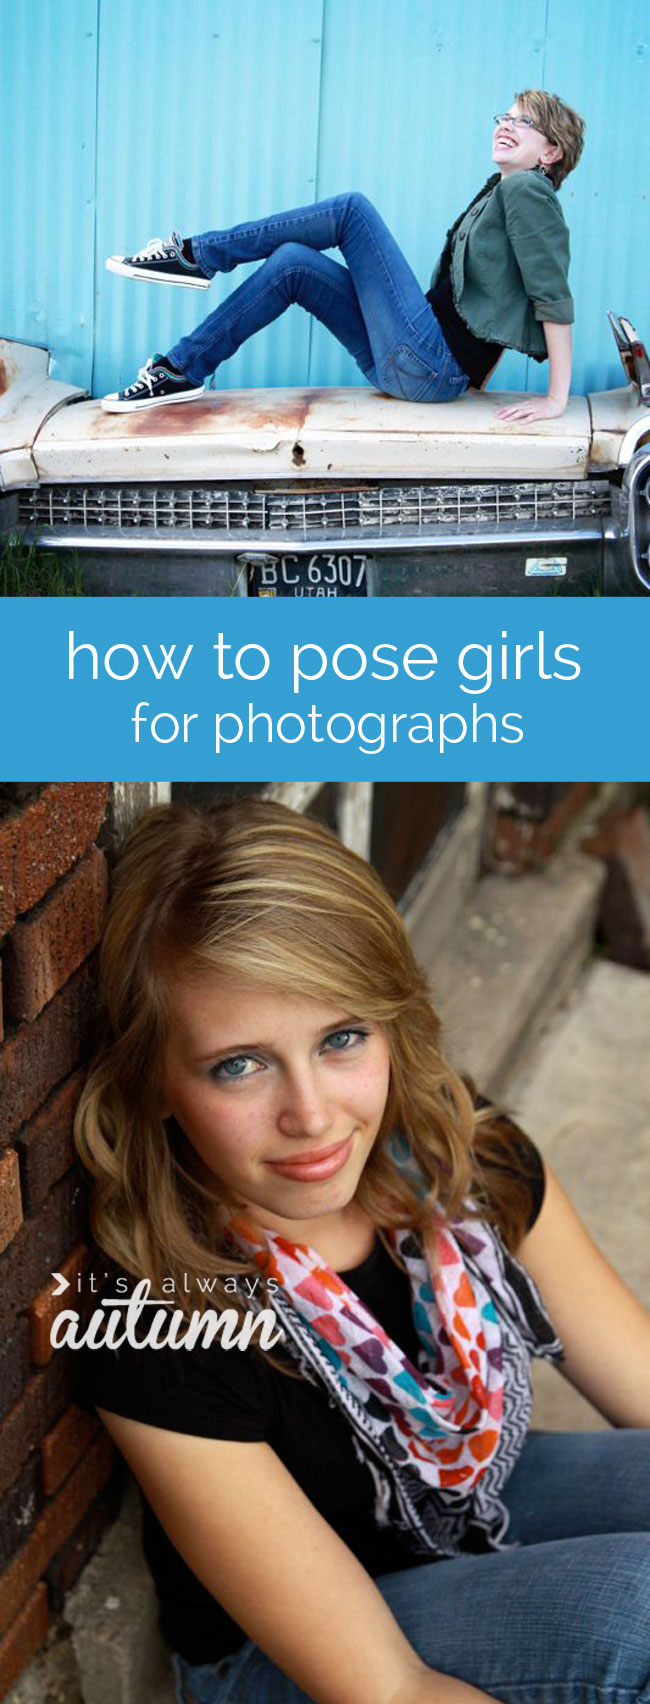 posing ideas for girls - how to pose girls for photographs/photos